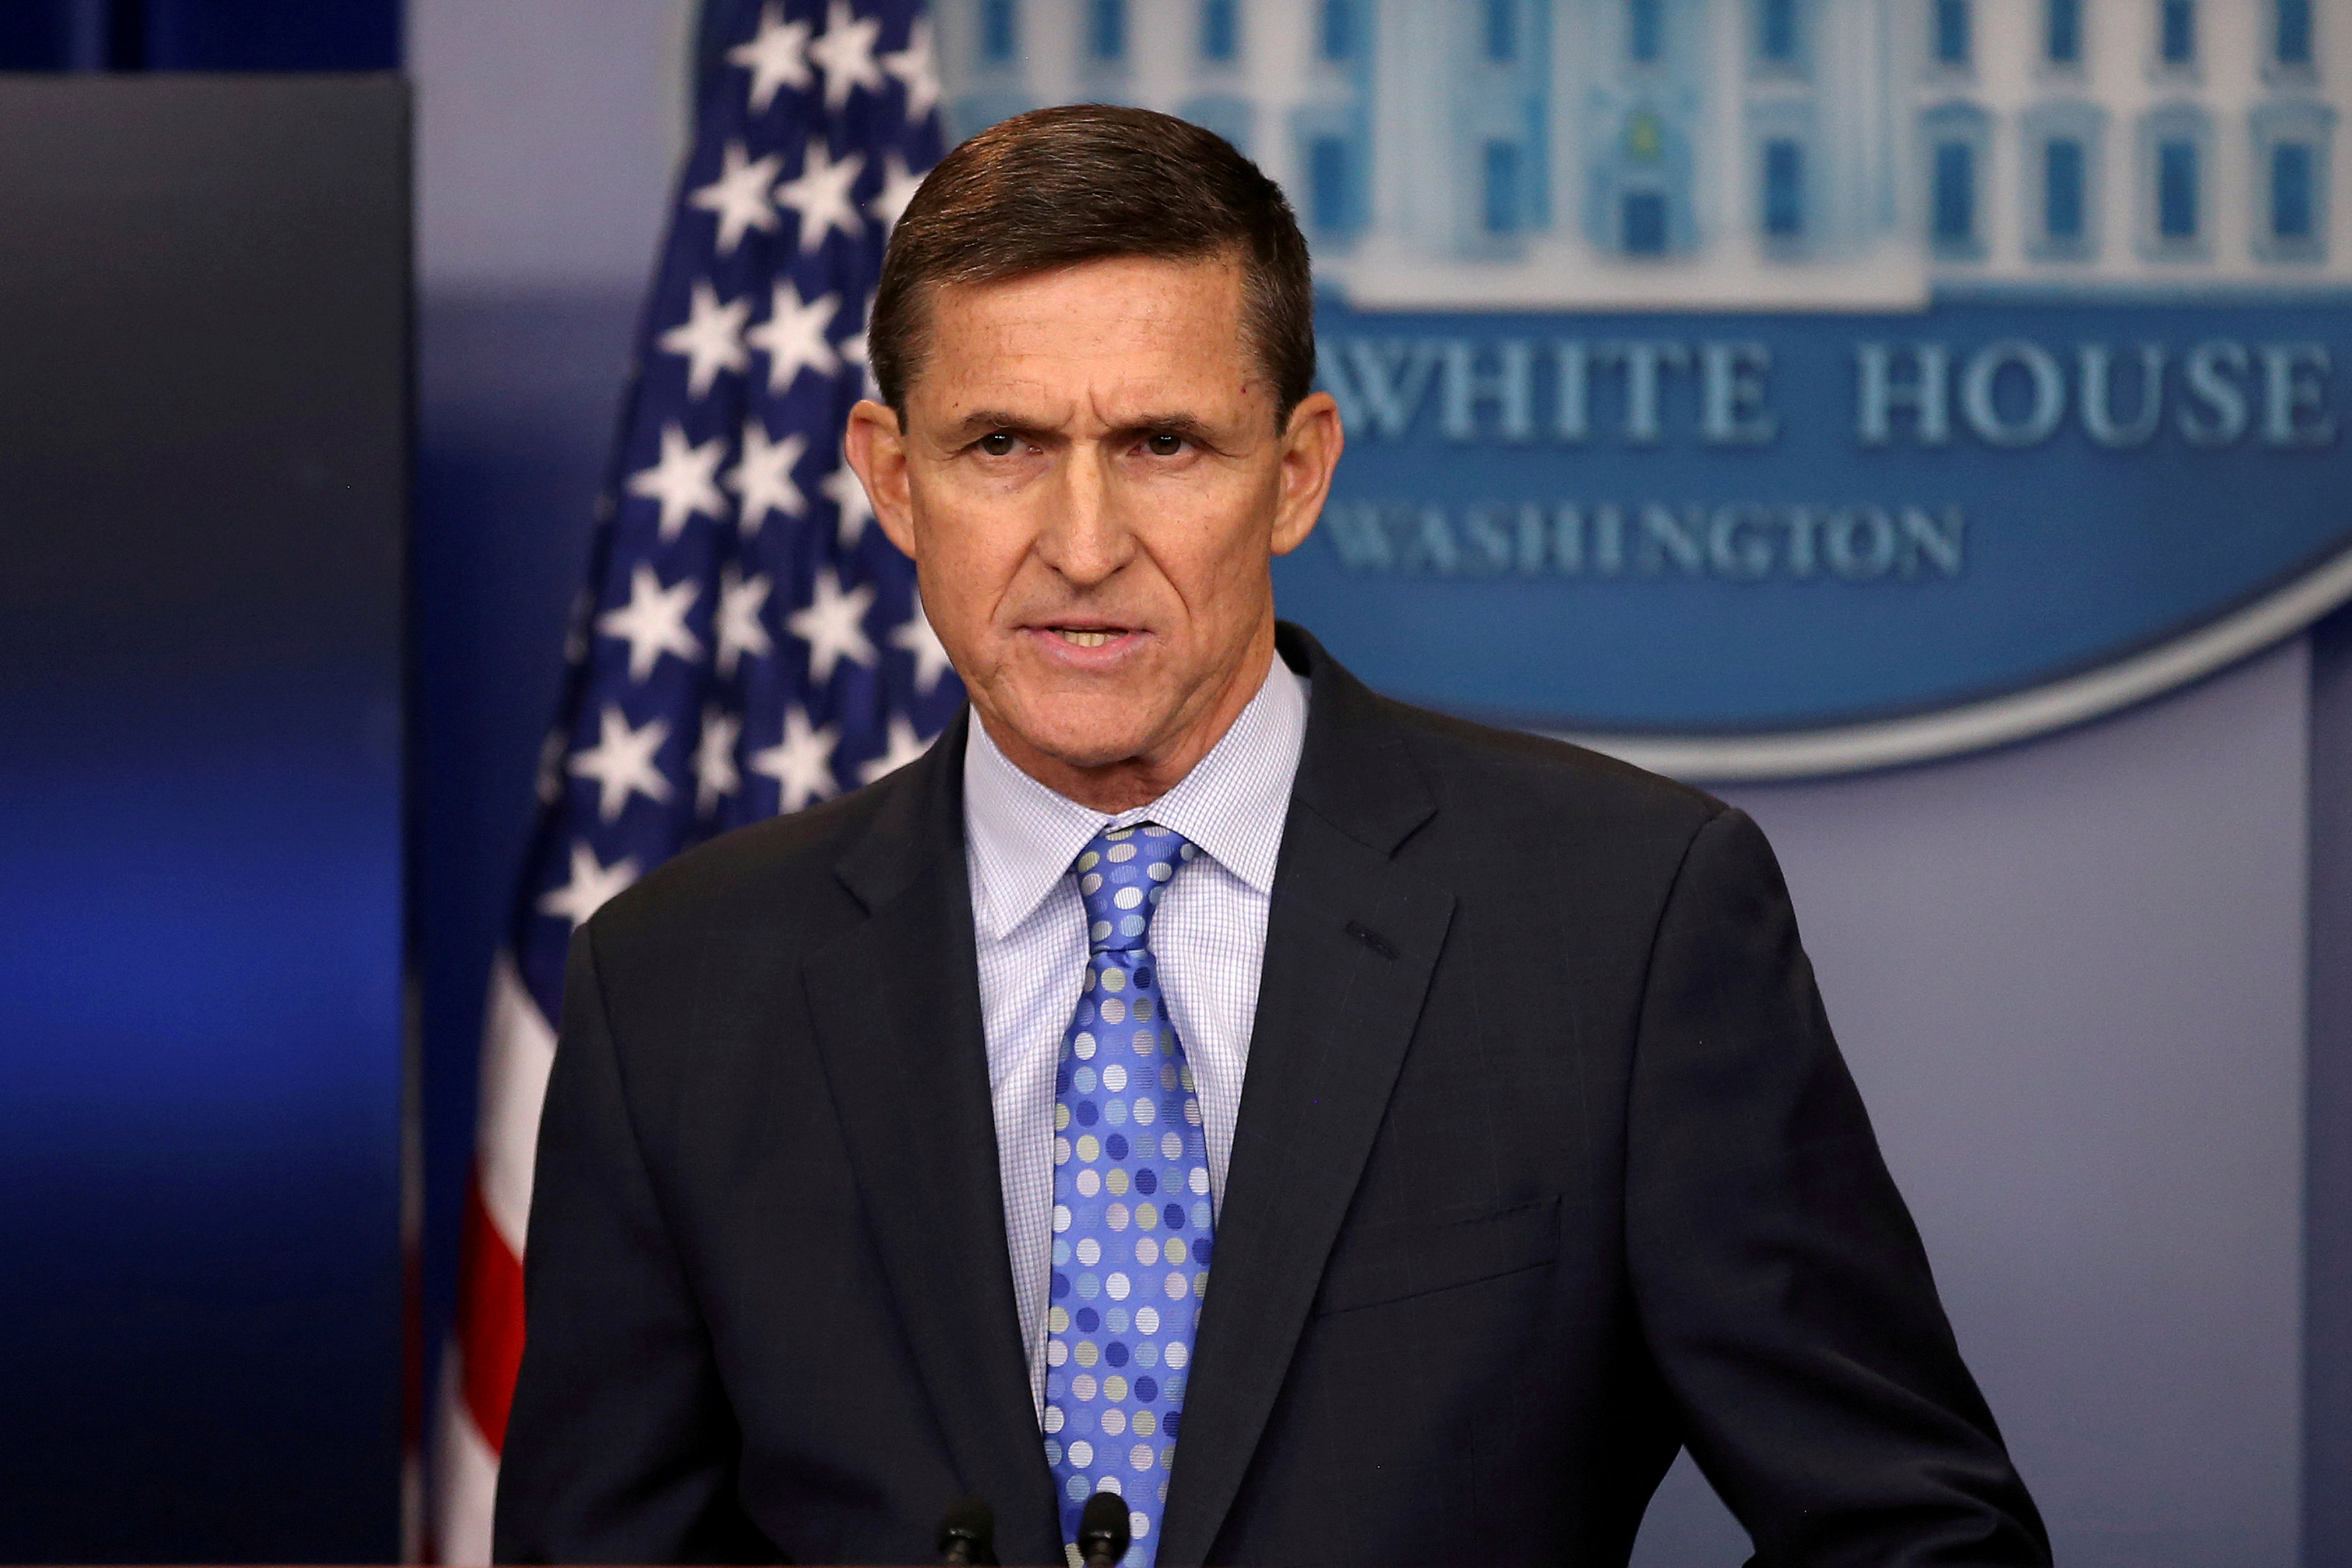 READ: Declassified summaries of Michael Flynn's calls with former Russian ambassador